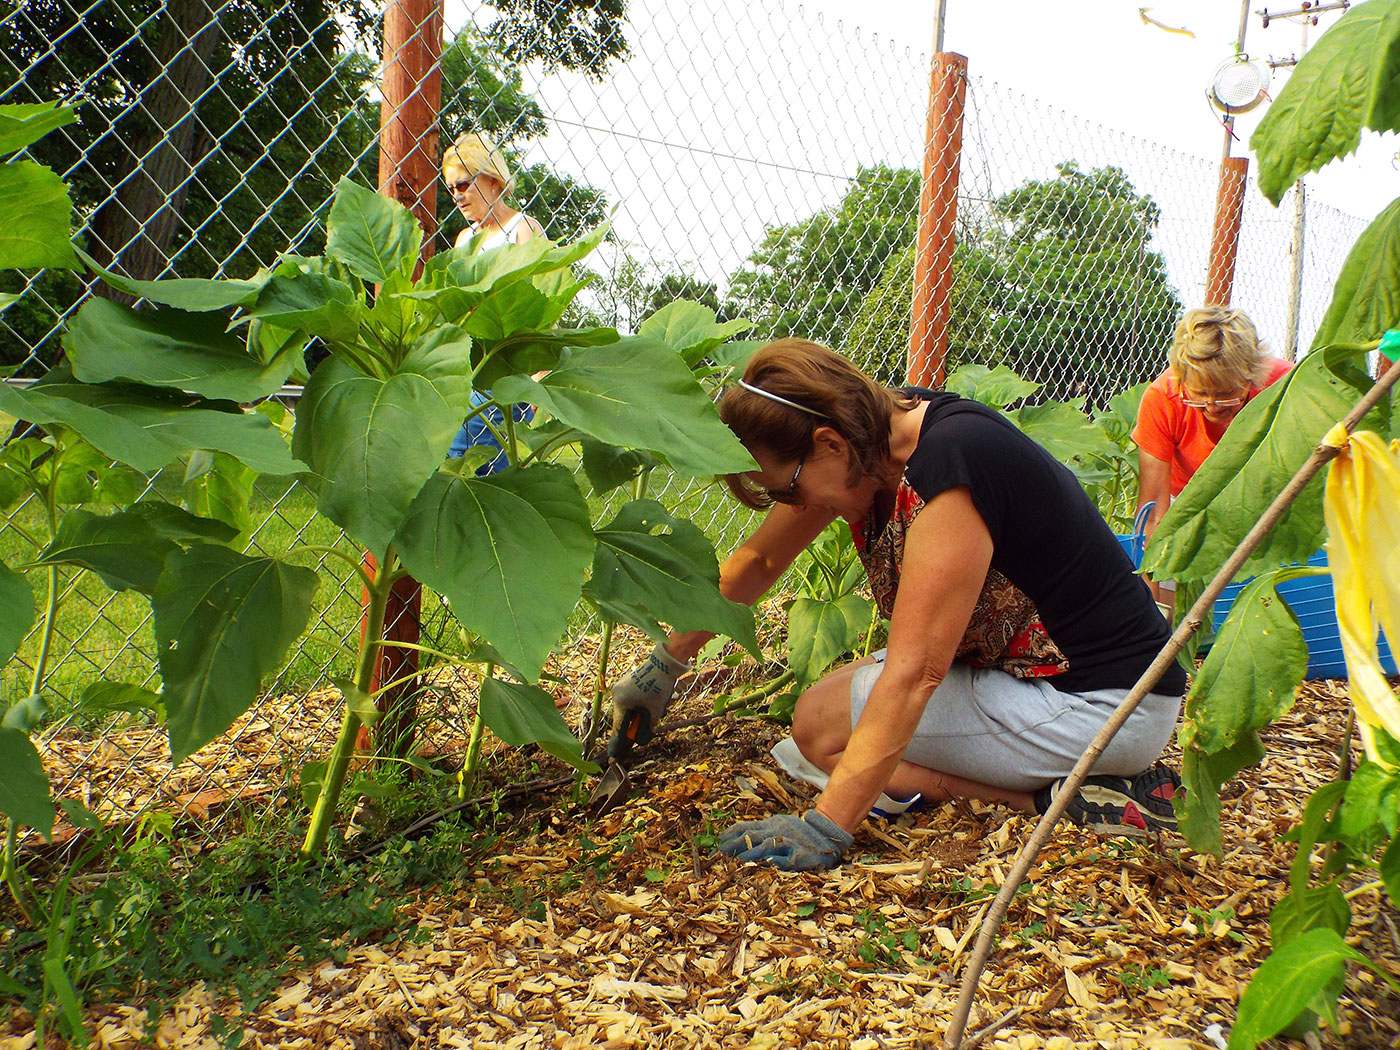 Women working in the community garden